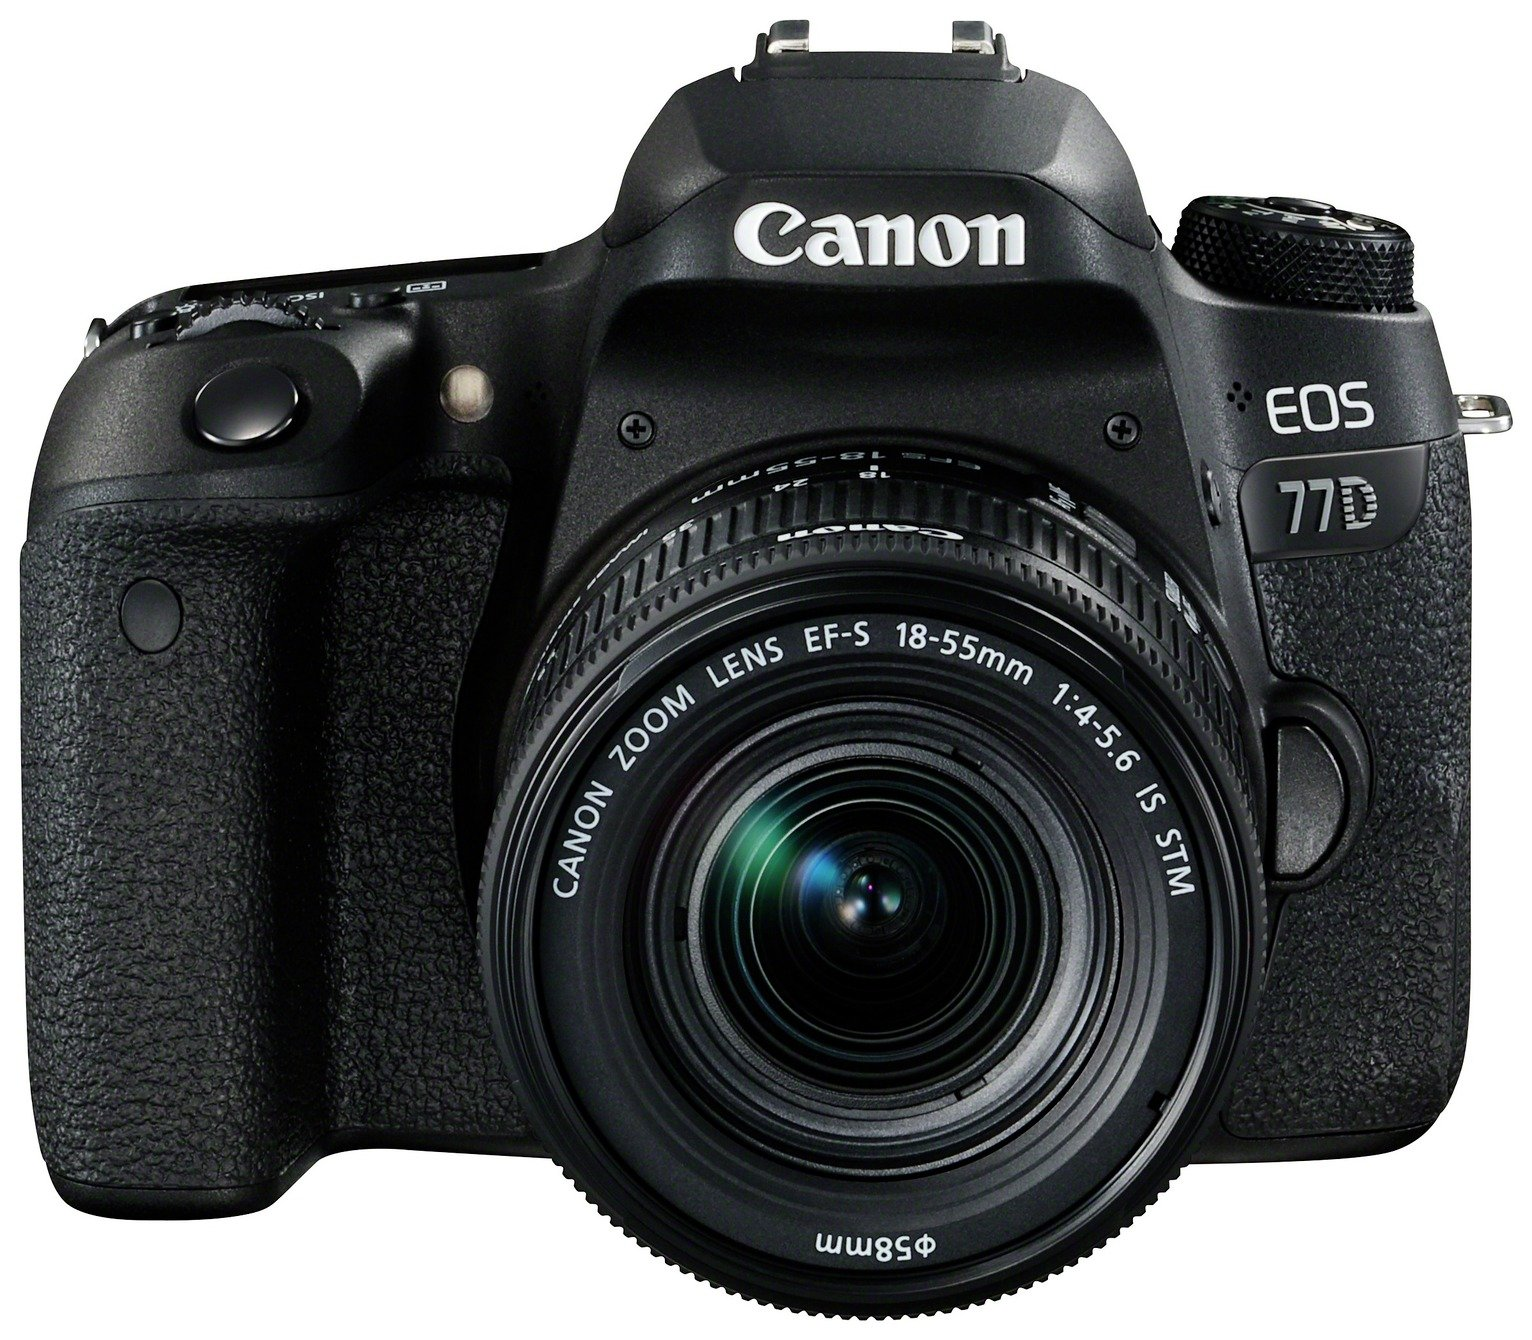 Image of Canon EOS 77D DSLR Camera with 18-55mm Lens